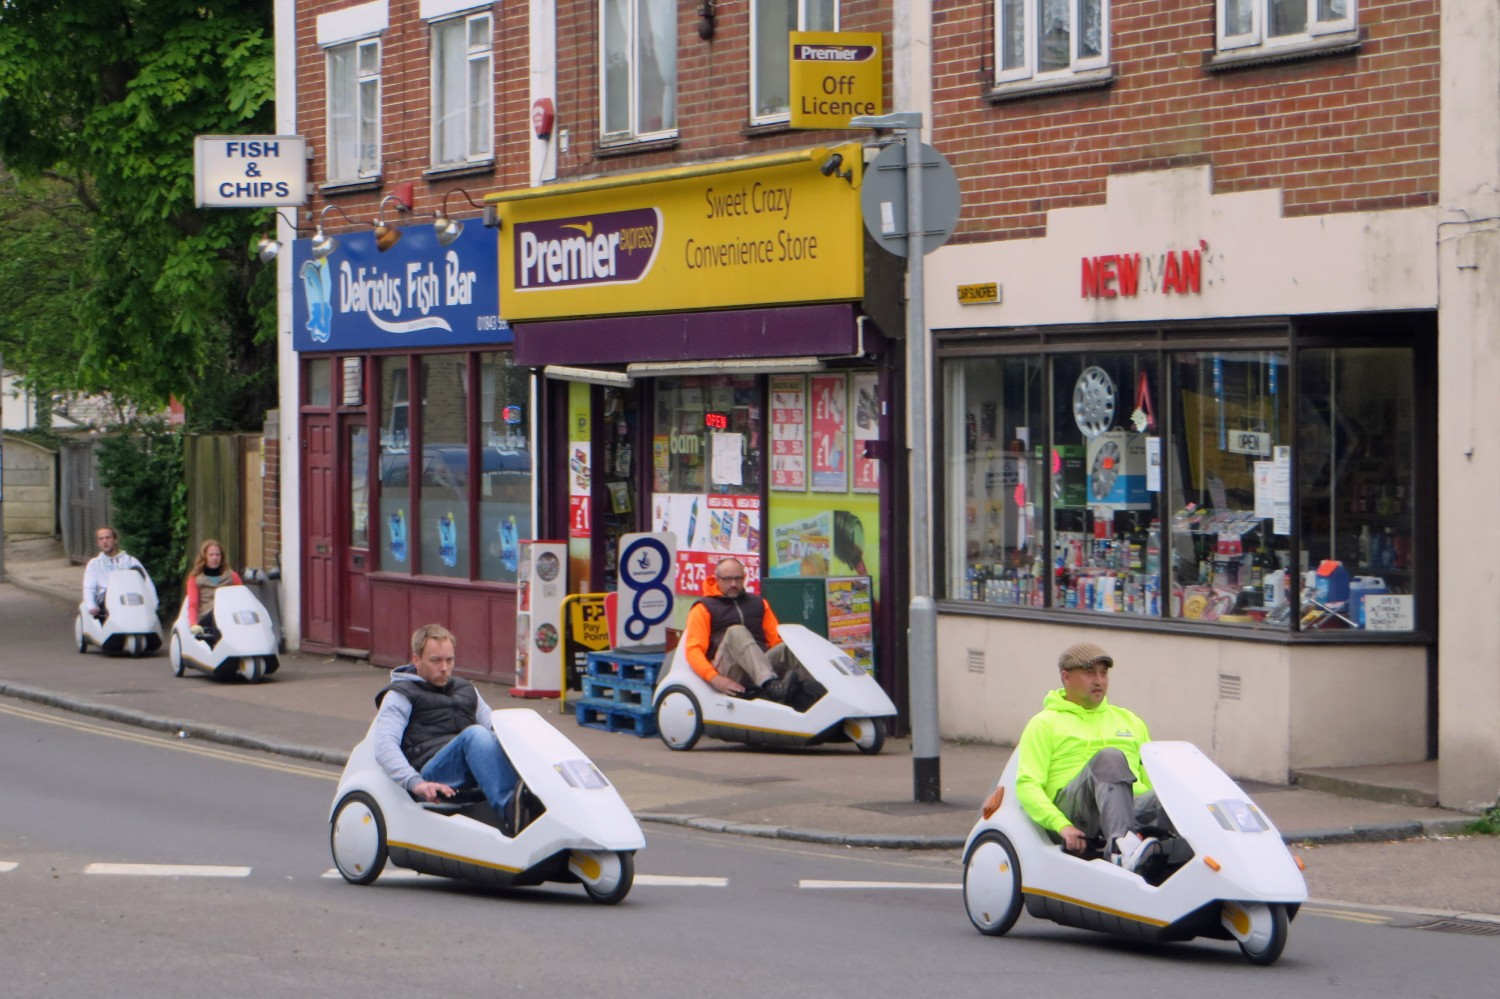 Sinclair C5/fot. Diamon Geezer, CC BY-NC-ND 2.0